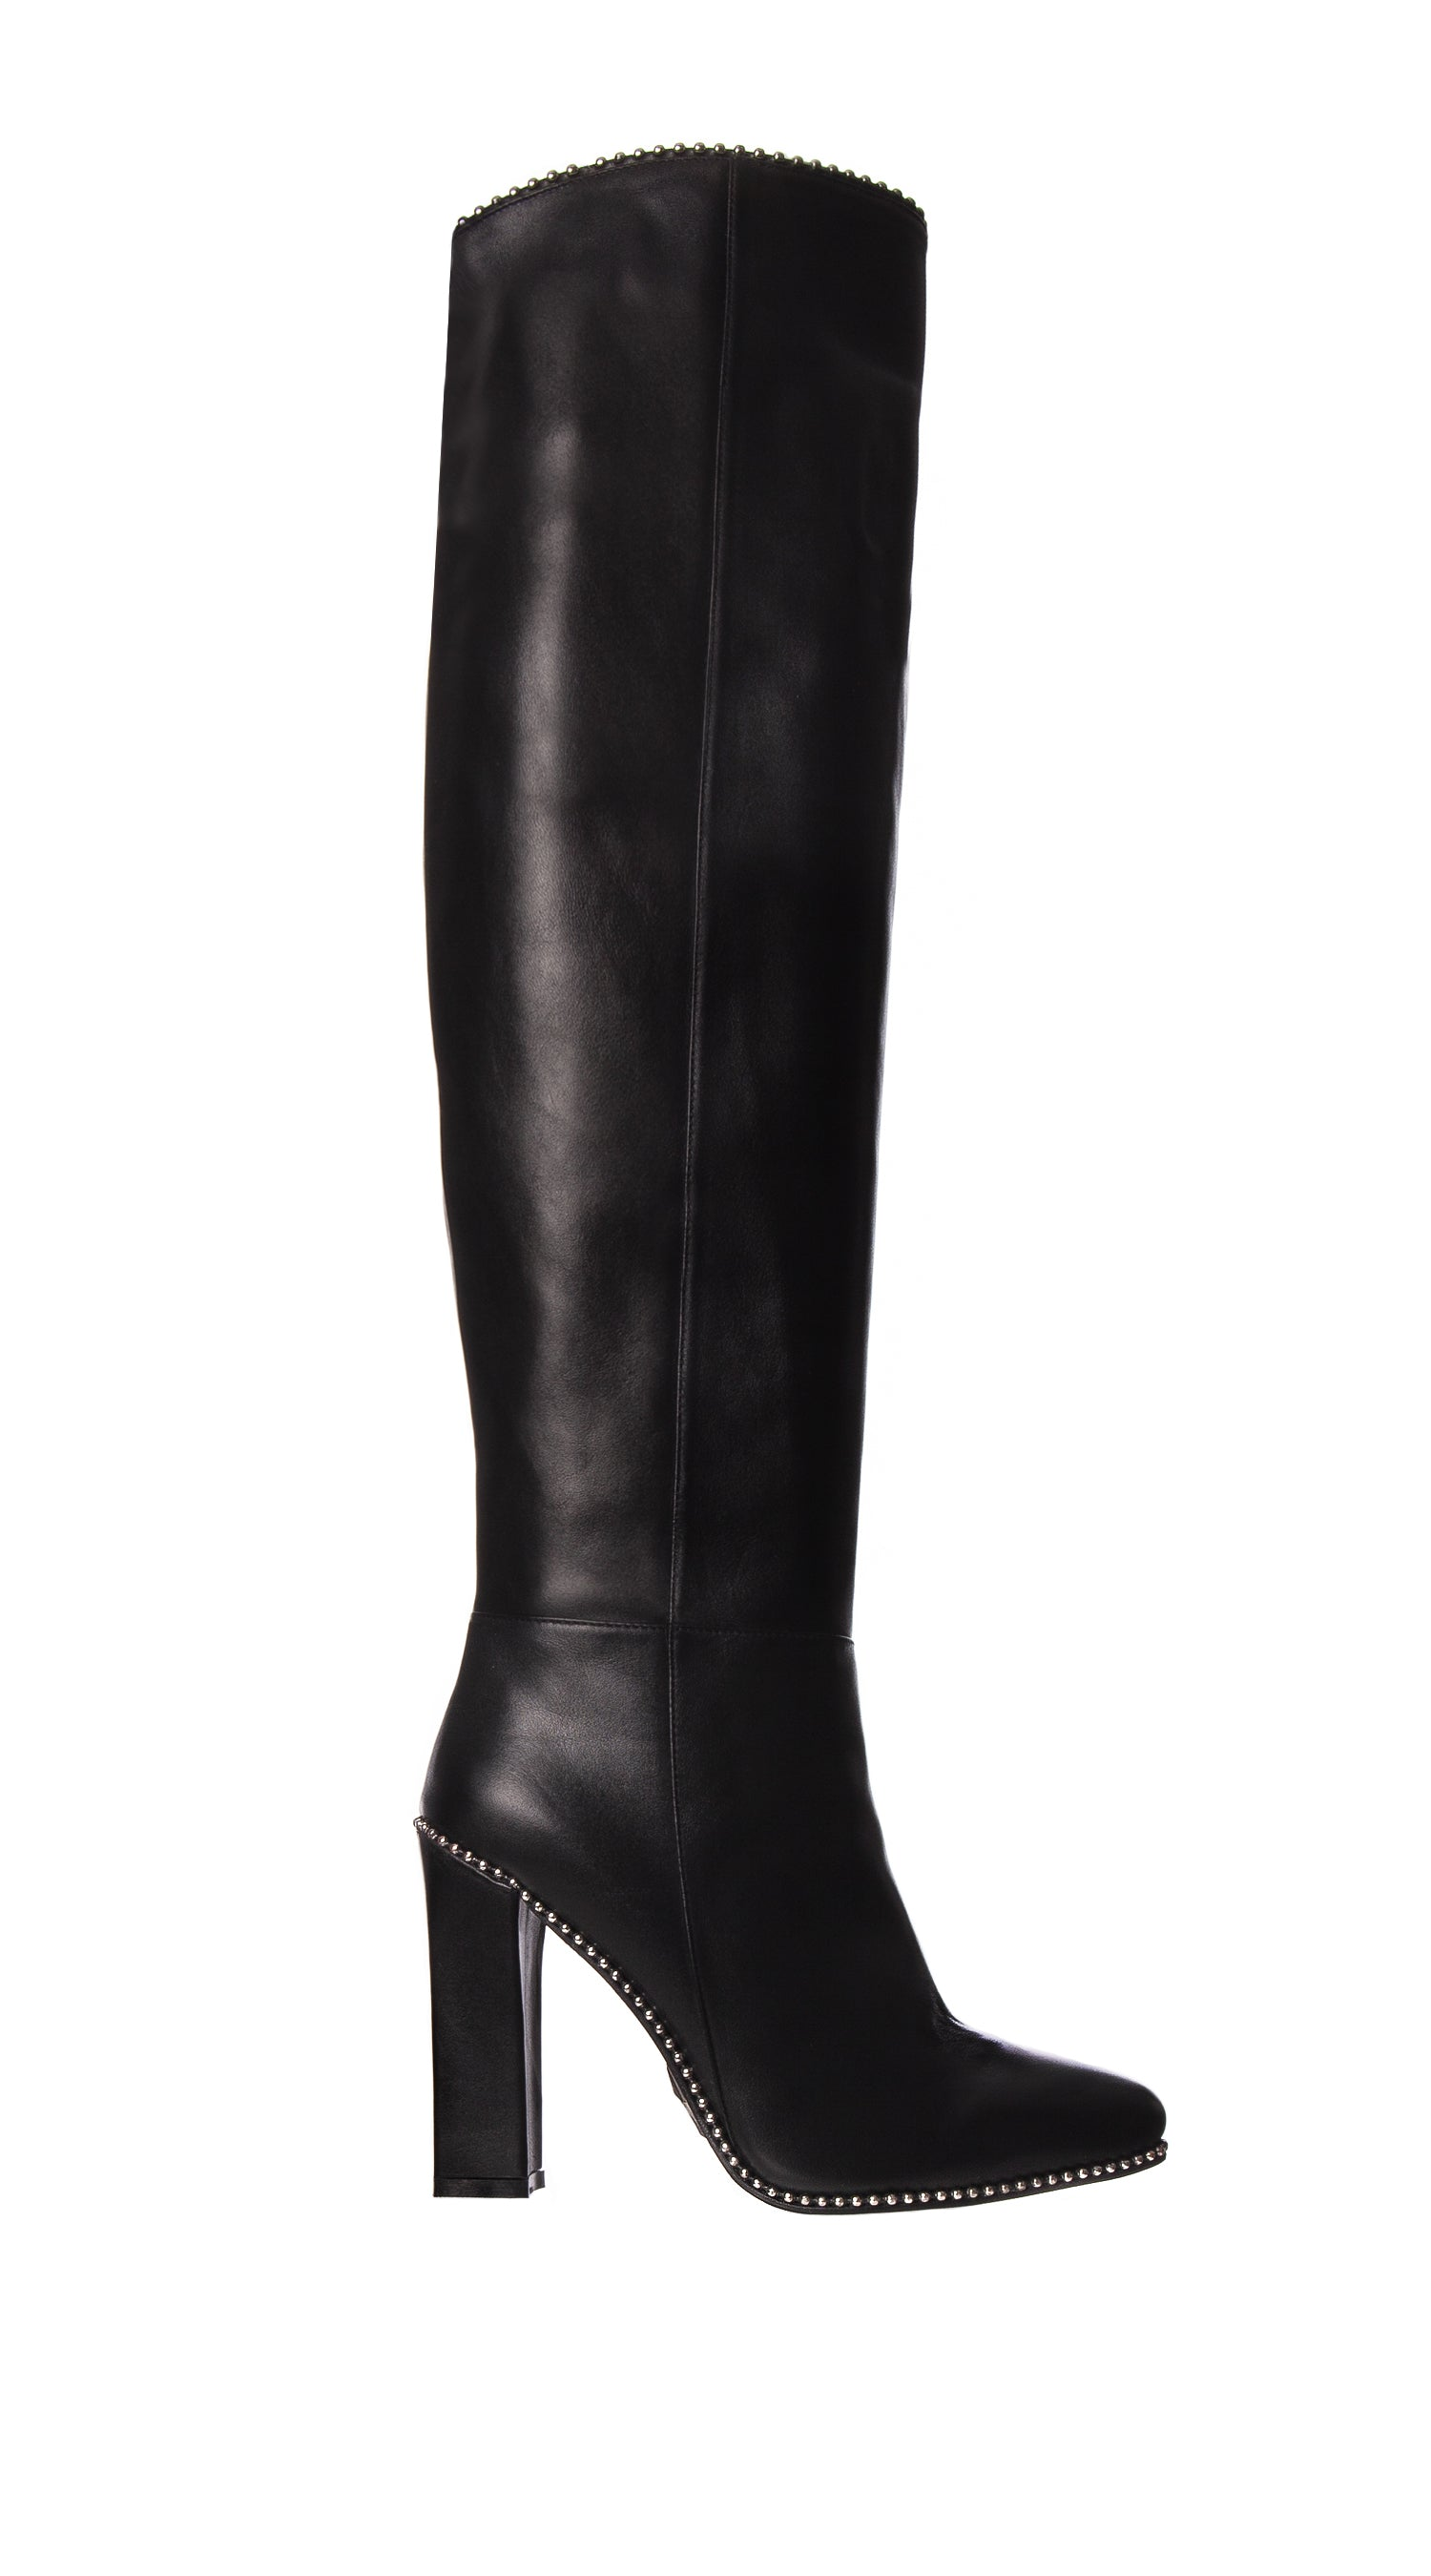 Luxy Leather Knee High Boots- Black